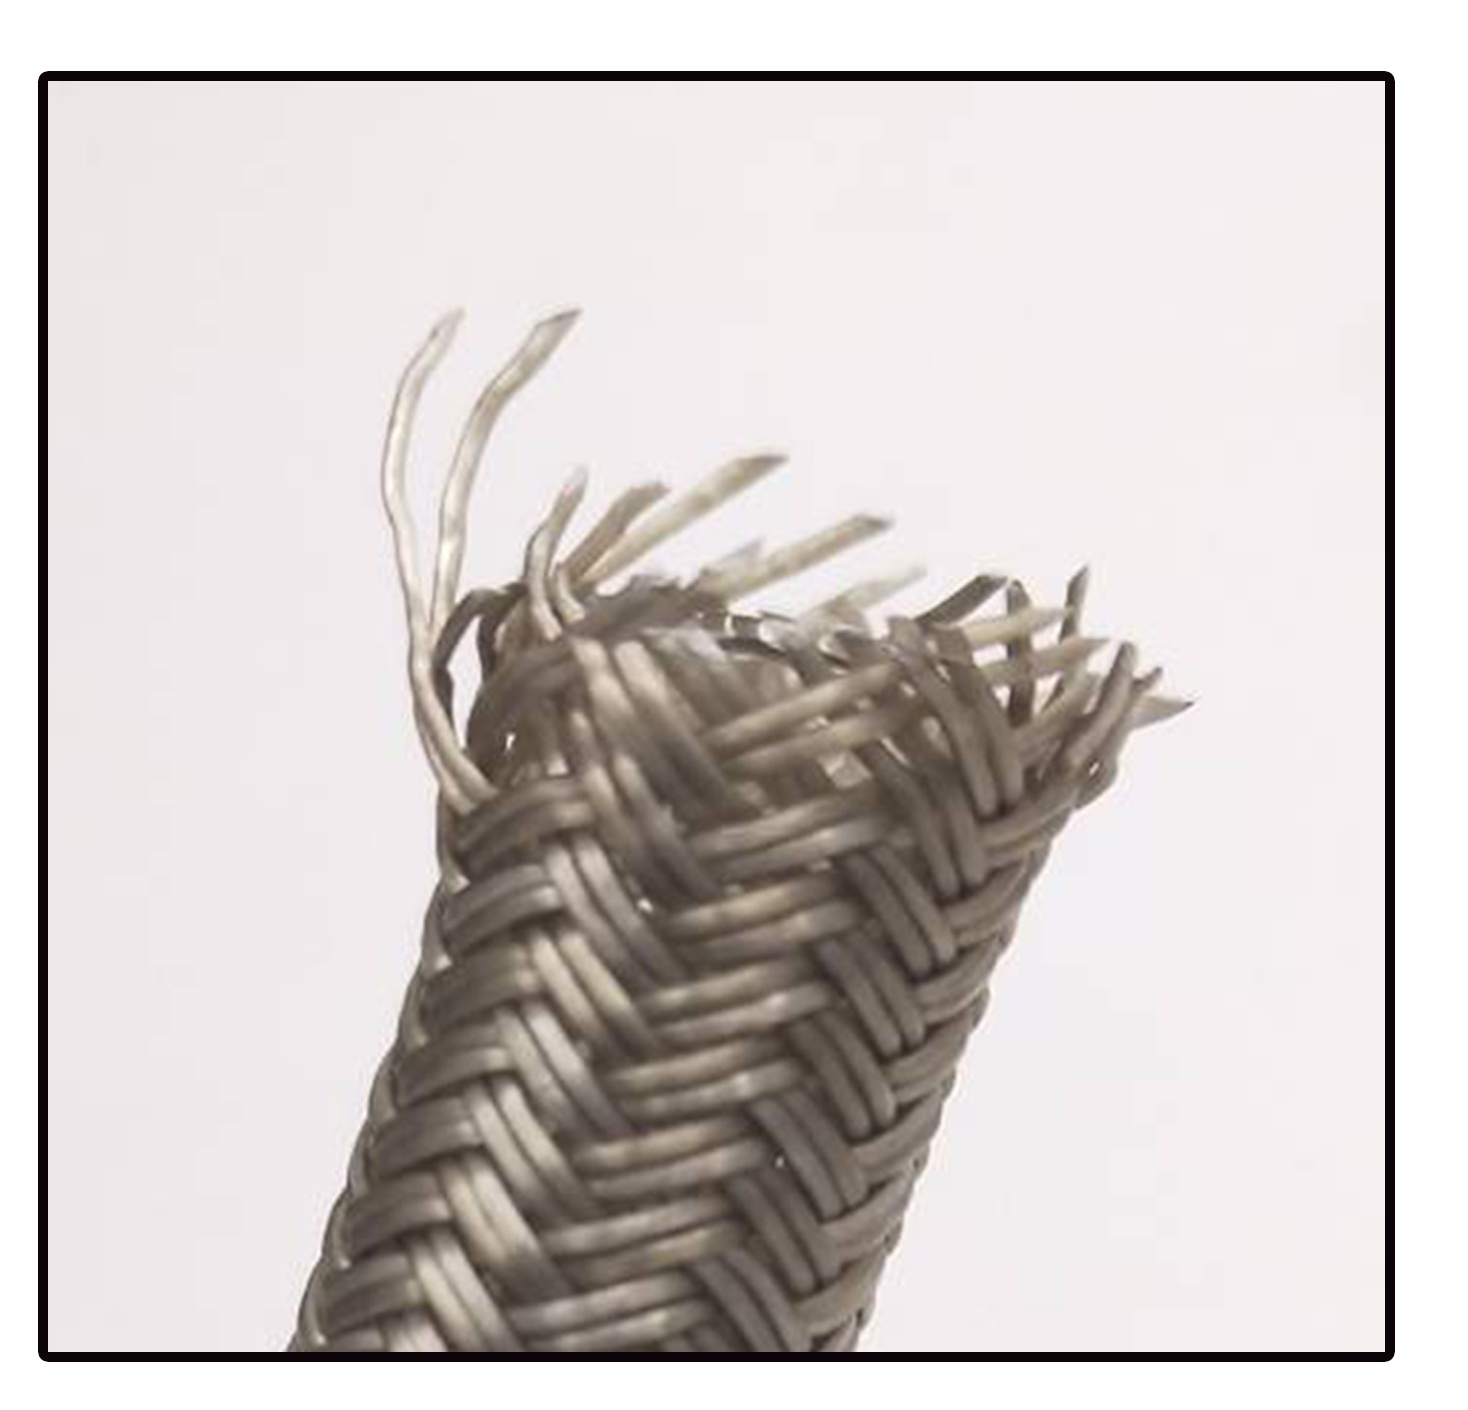 Polymer braided wire